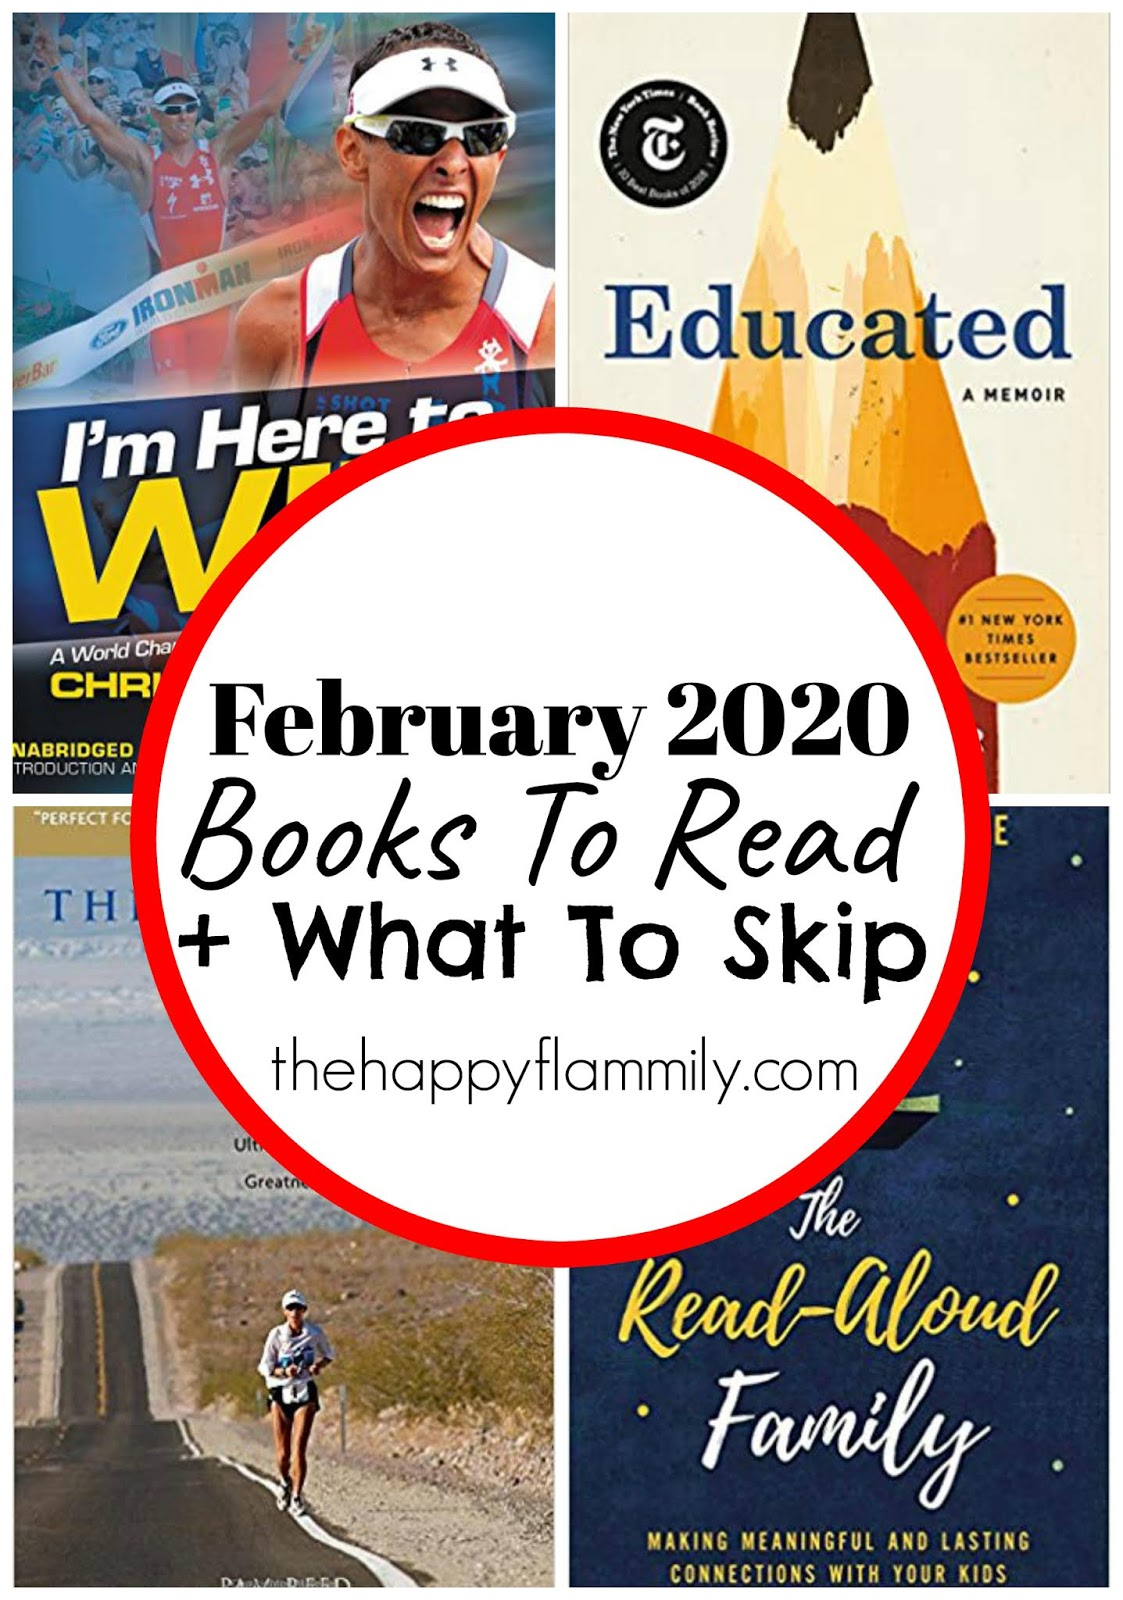 Best books 2020 nonfiction, top books to read in 2019, history books to read in 2020, best books to read in 2020 self help, best books 2019. Book to look out for in 2020, most anticipated books 2020, best books 2020 fiction. #books #booklist #fiction #nonfiction #sportsbooks #runningbooks #running #reading